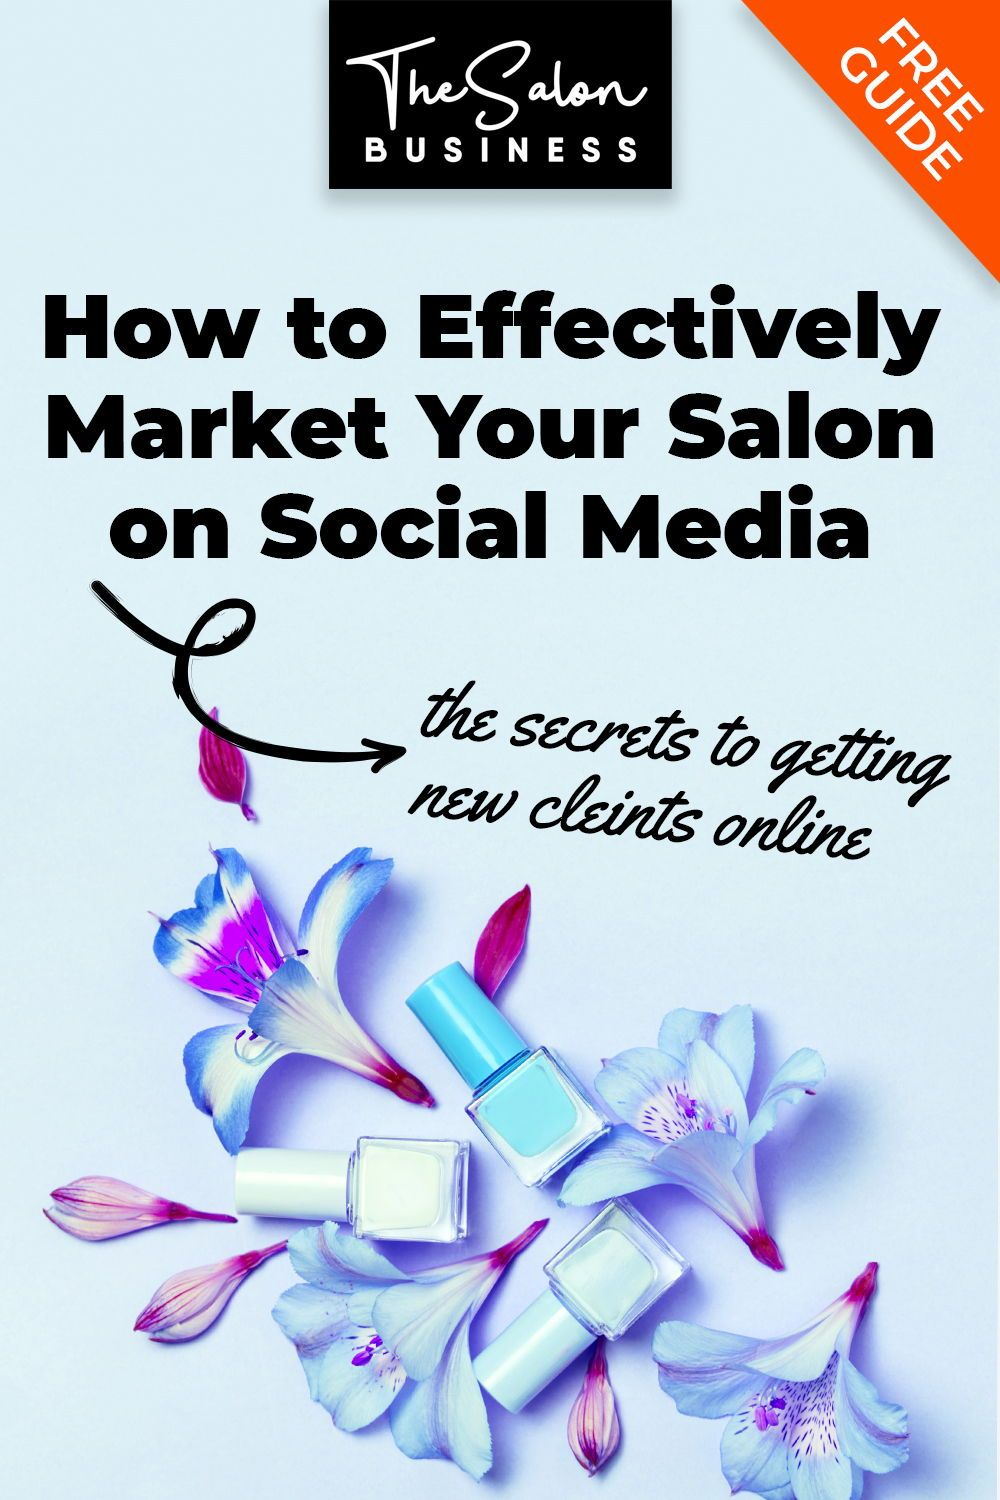 Salon and spa marketing for social media. Ideas to how you can get